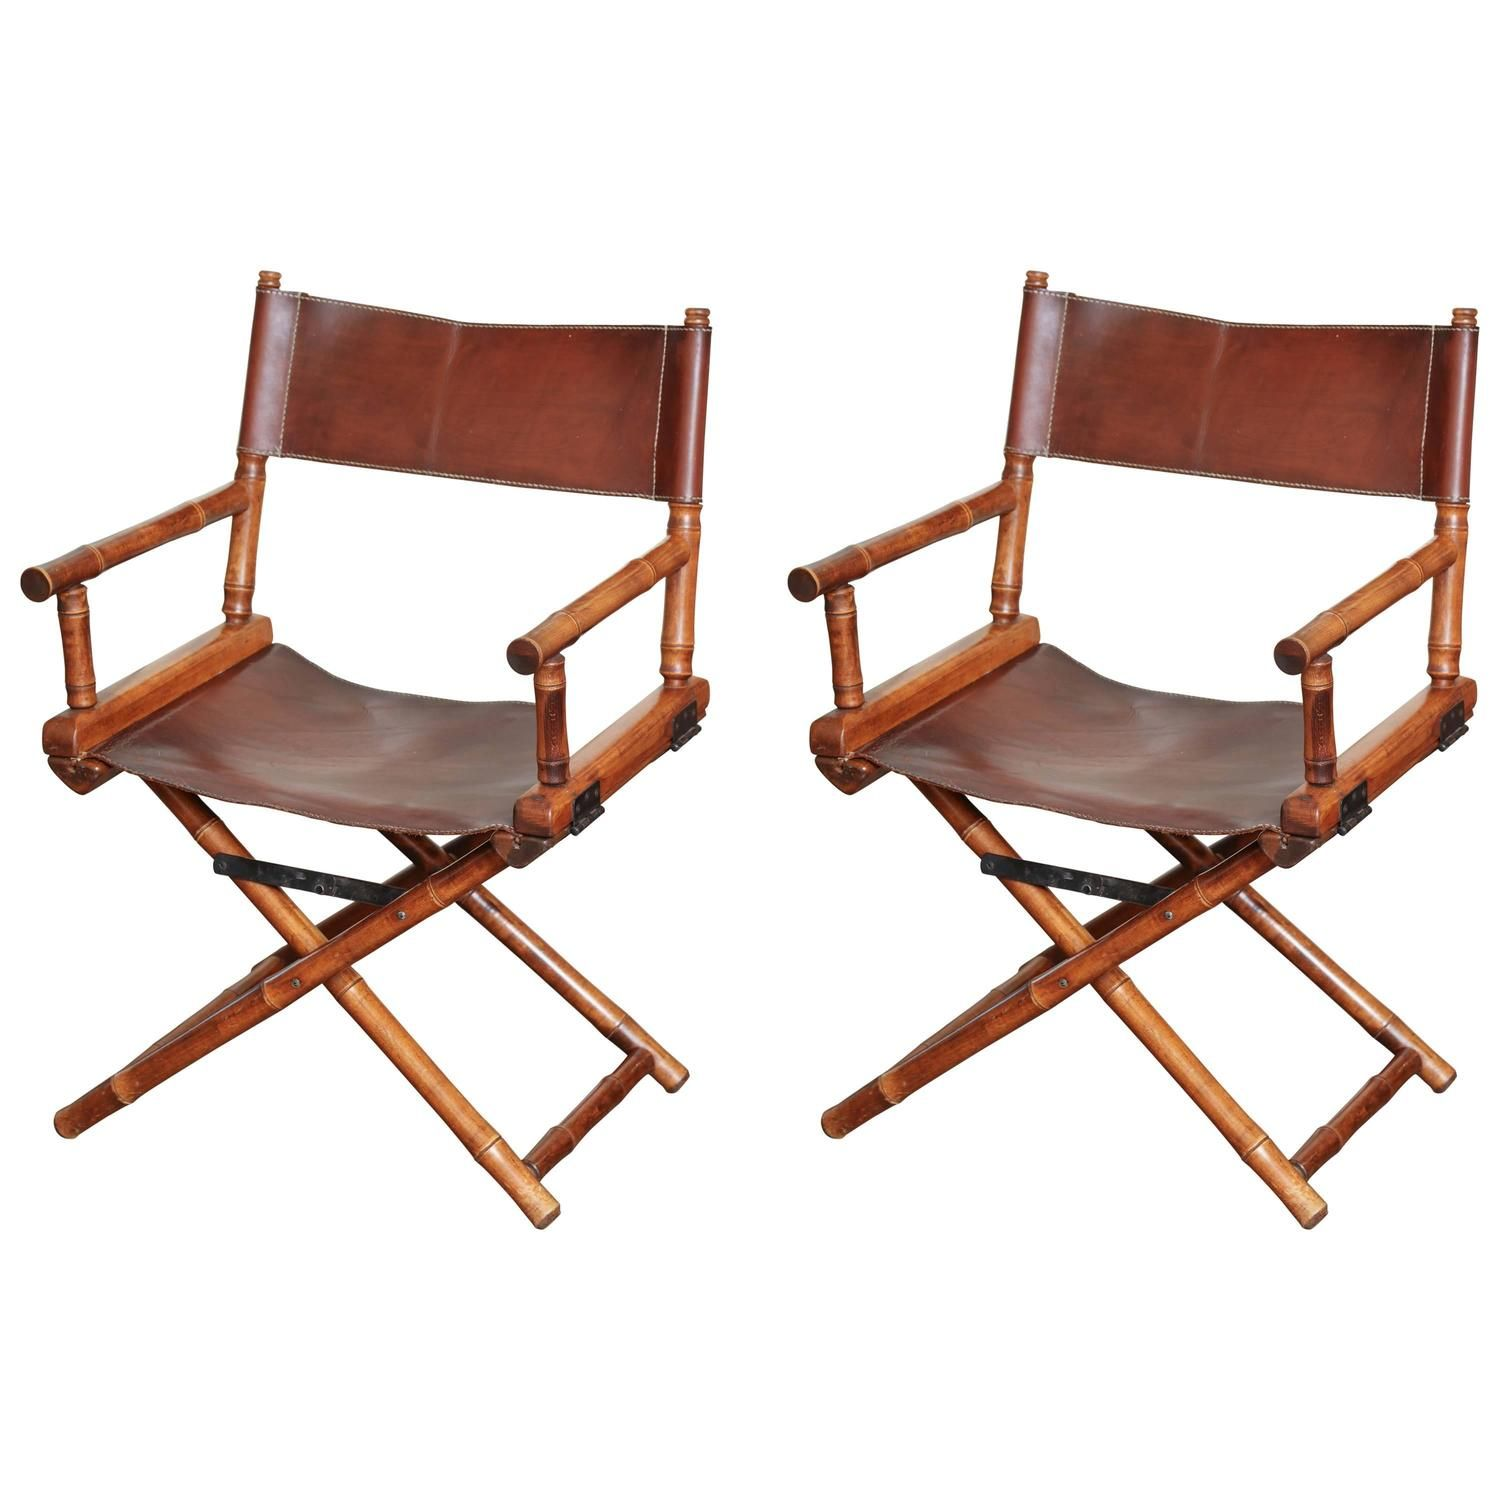 bamboo directors chairs hire chair covers northern ireland pair of and leather circa 1960 1 vl i